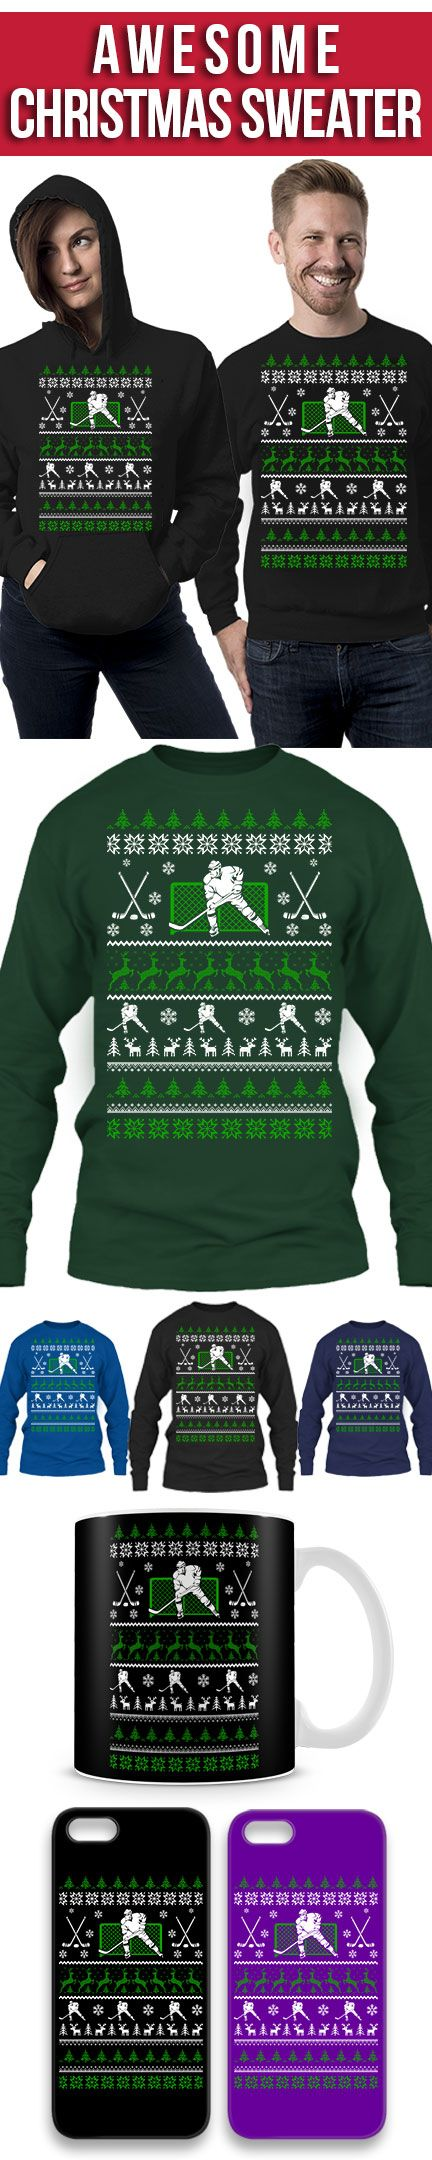 Hockey Ugly Christmas Sweater! Click The Image To Buy It Now or Tag Someone You Want To Buy This For. #hockey